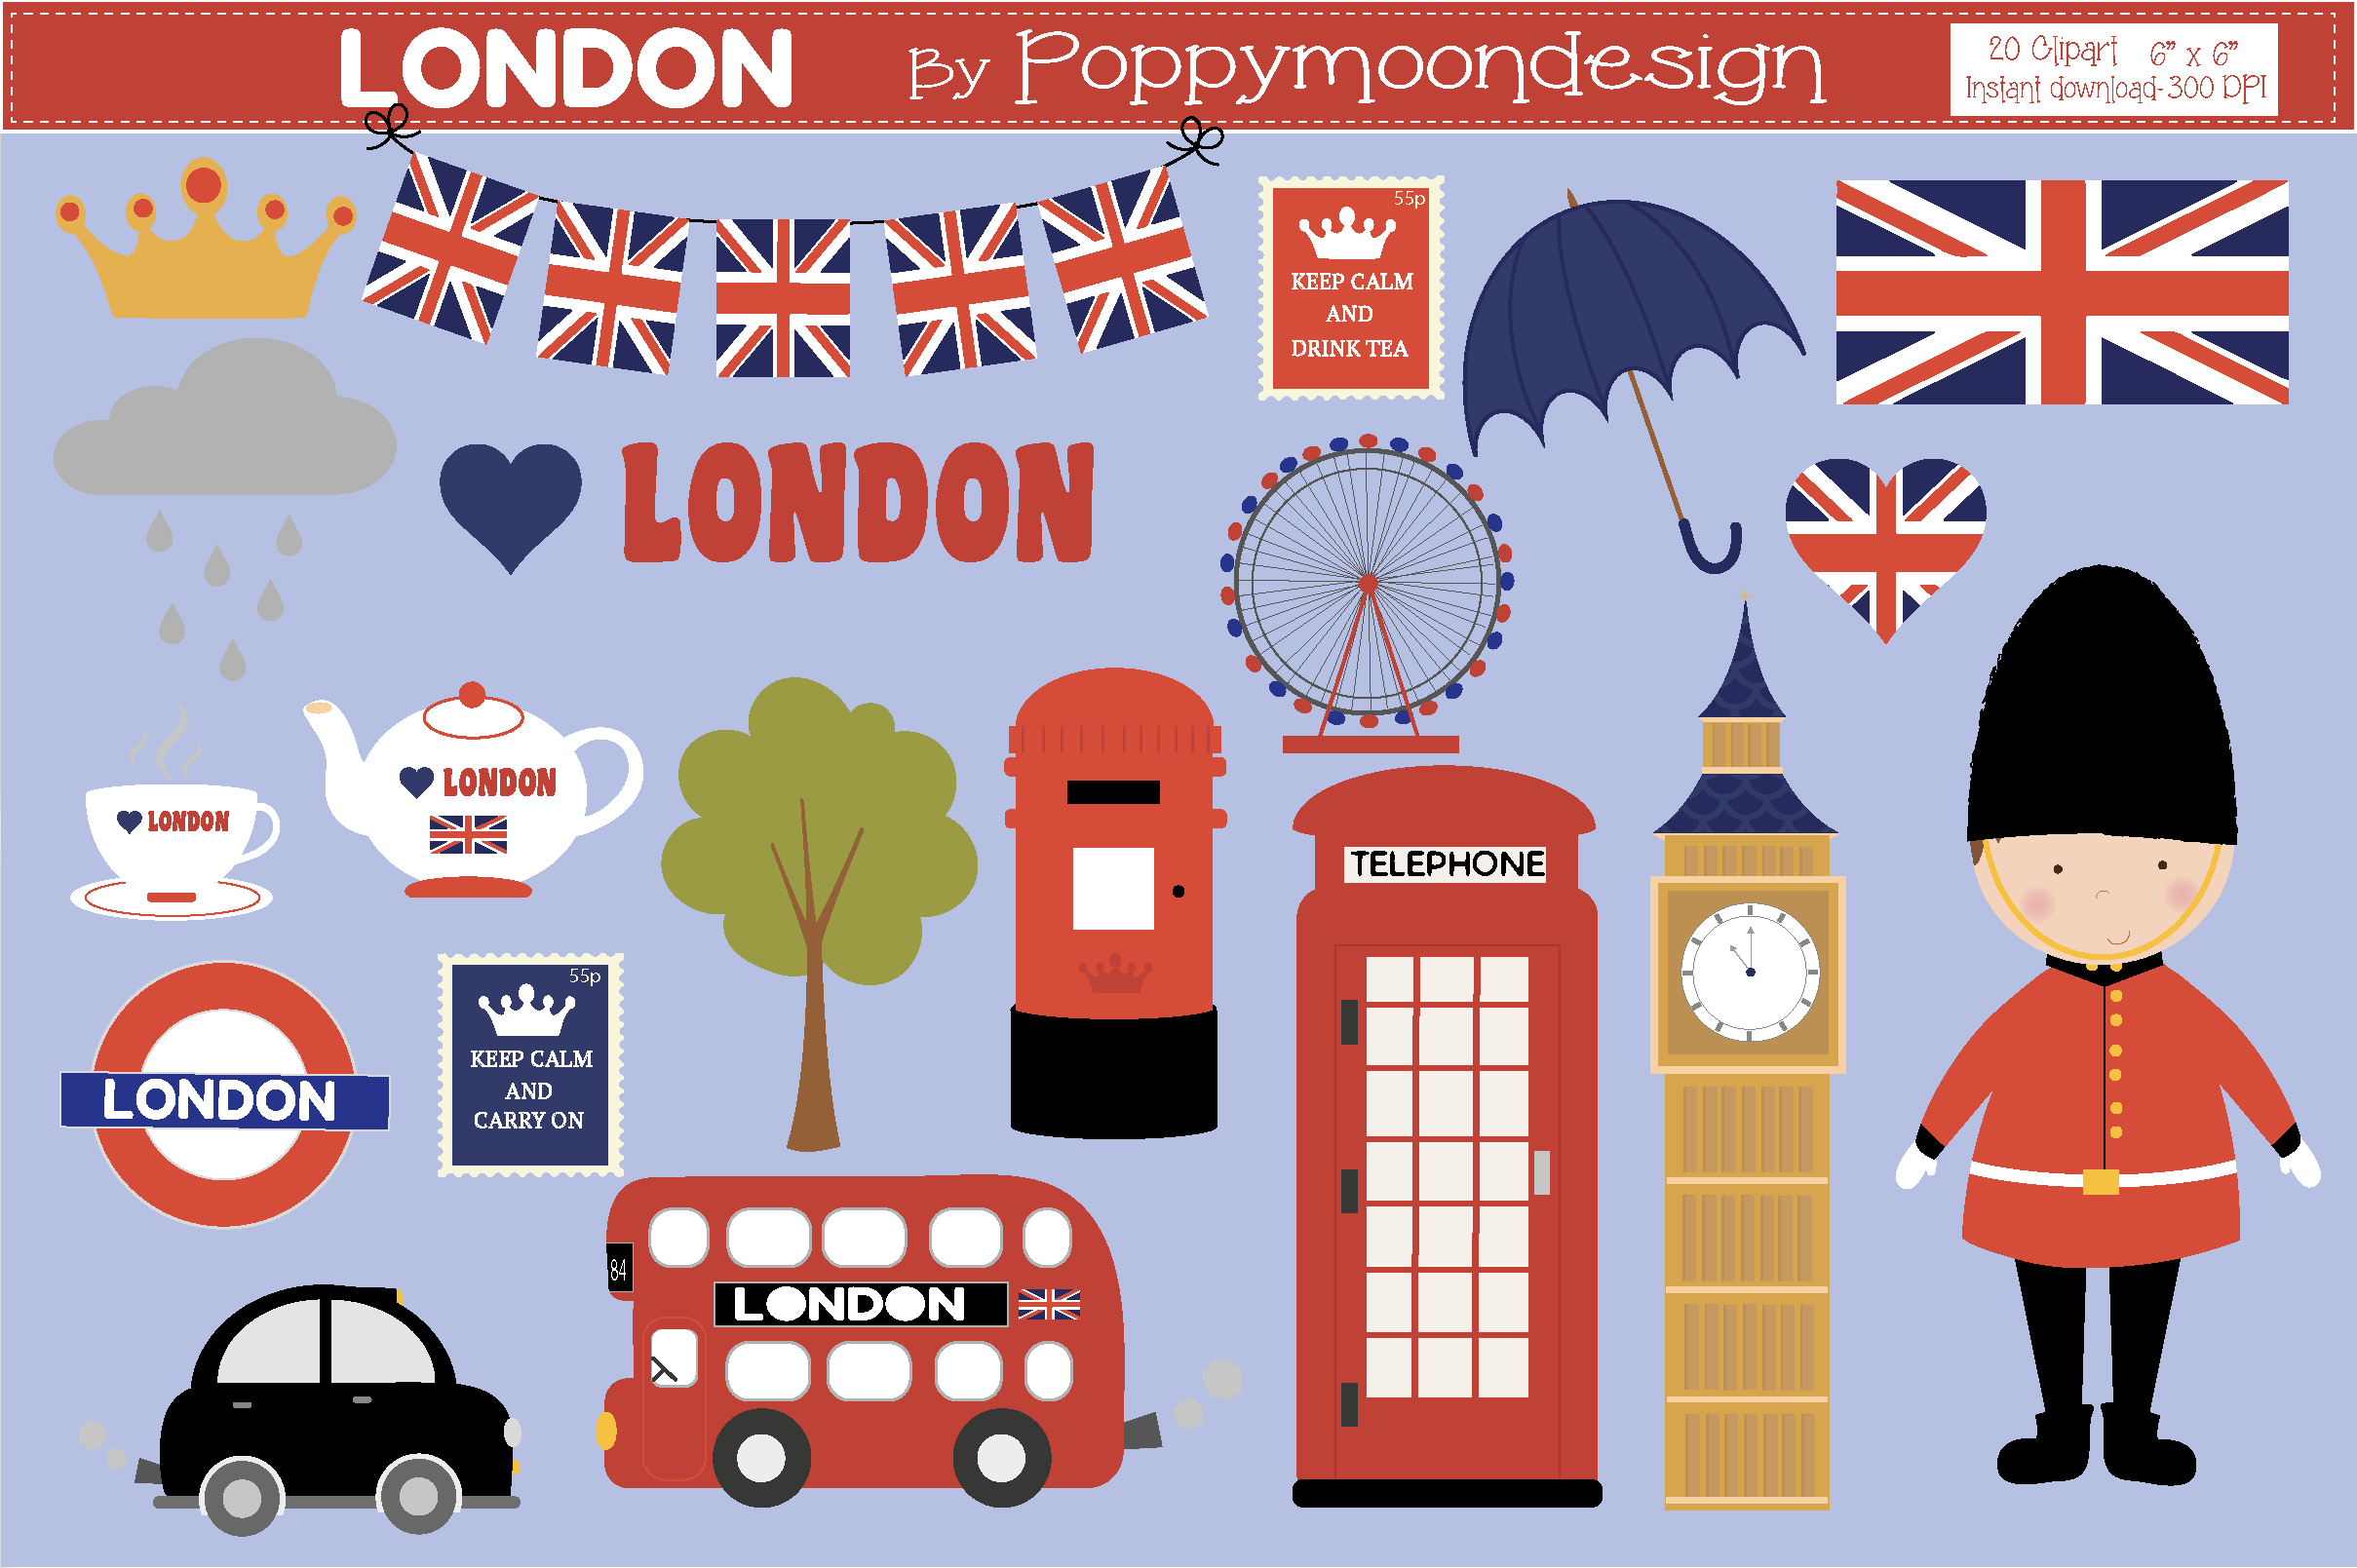 Download Free London Graphic By Poppymoondesign Creative Fabrica for Cricut Explore, Silhouette and other cutting machines.